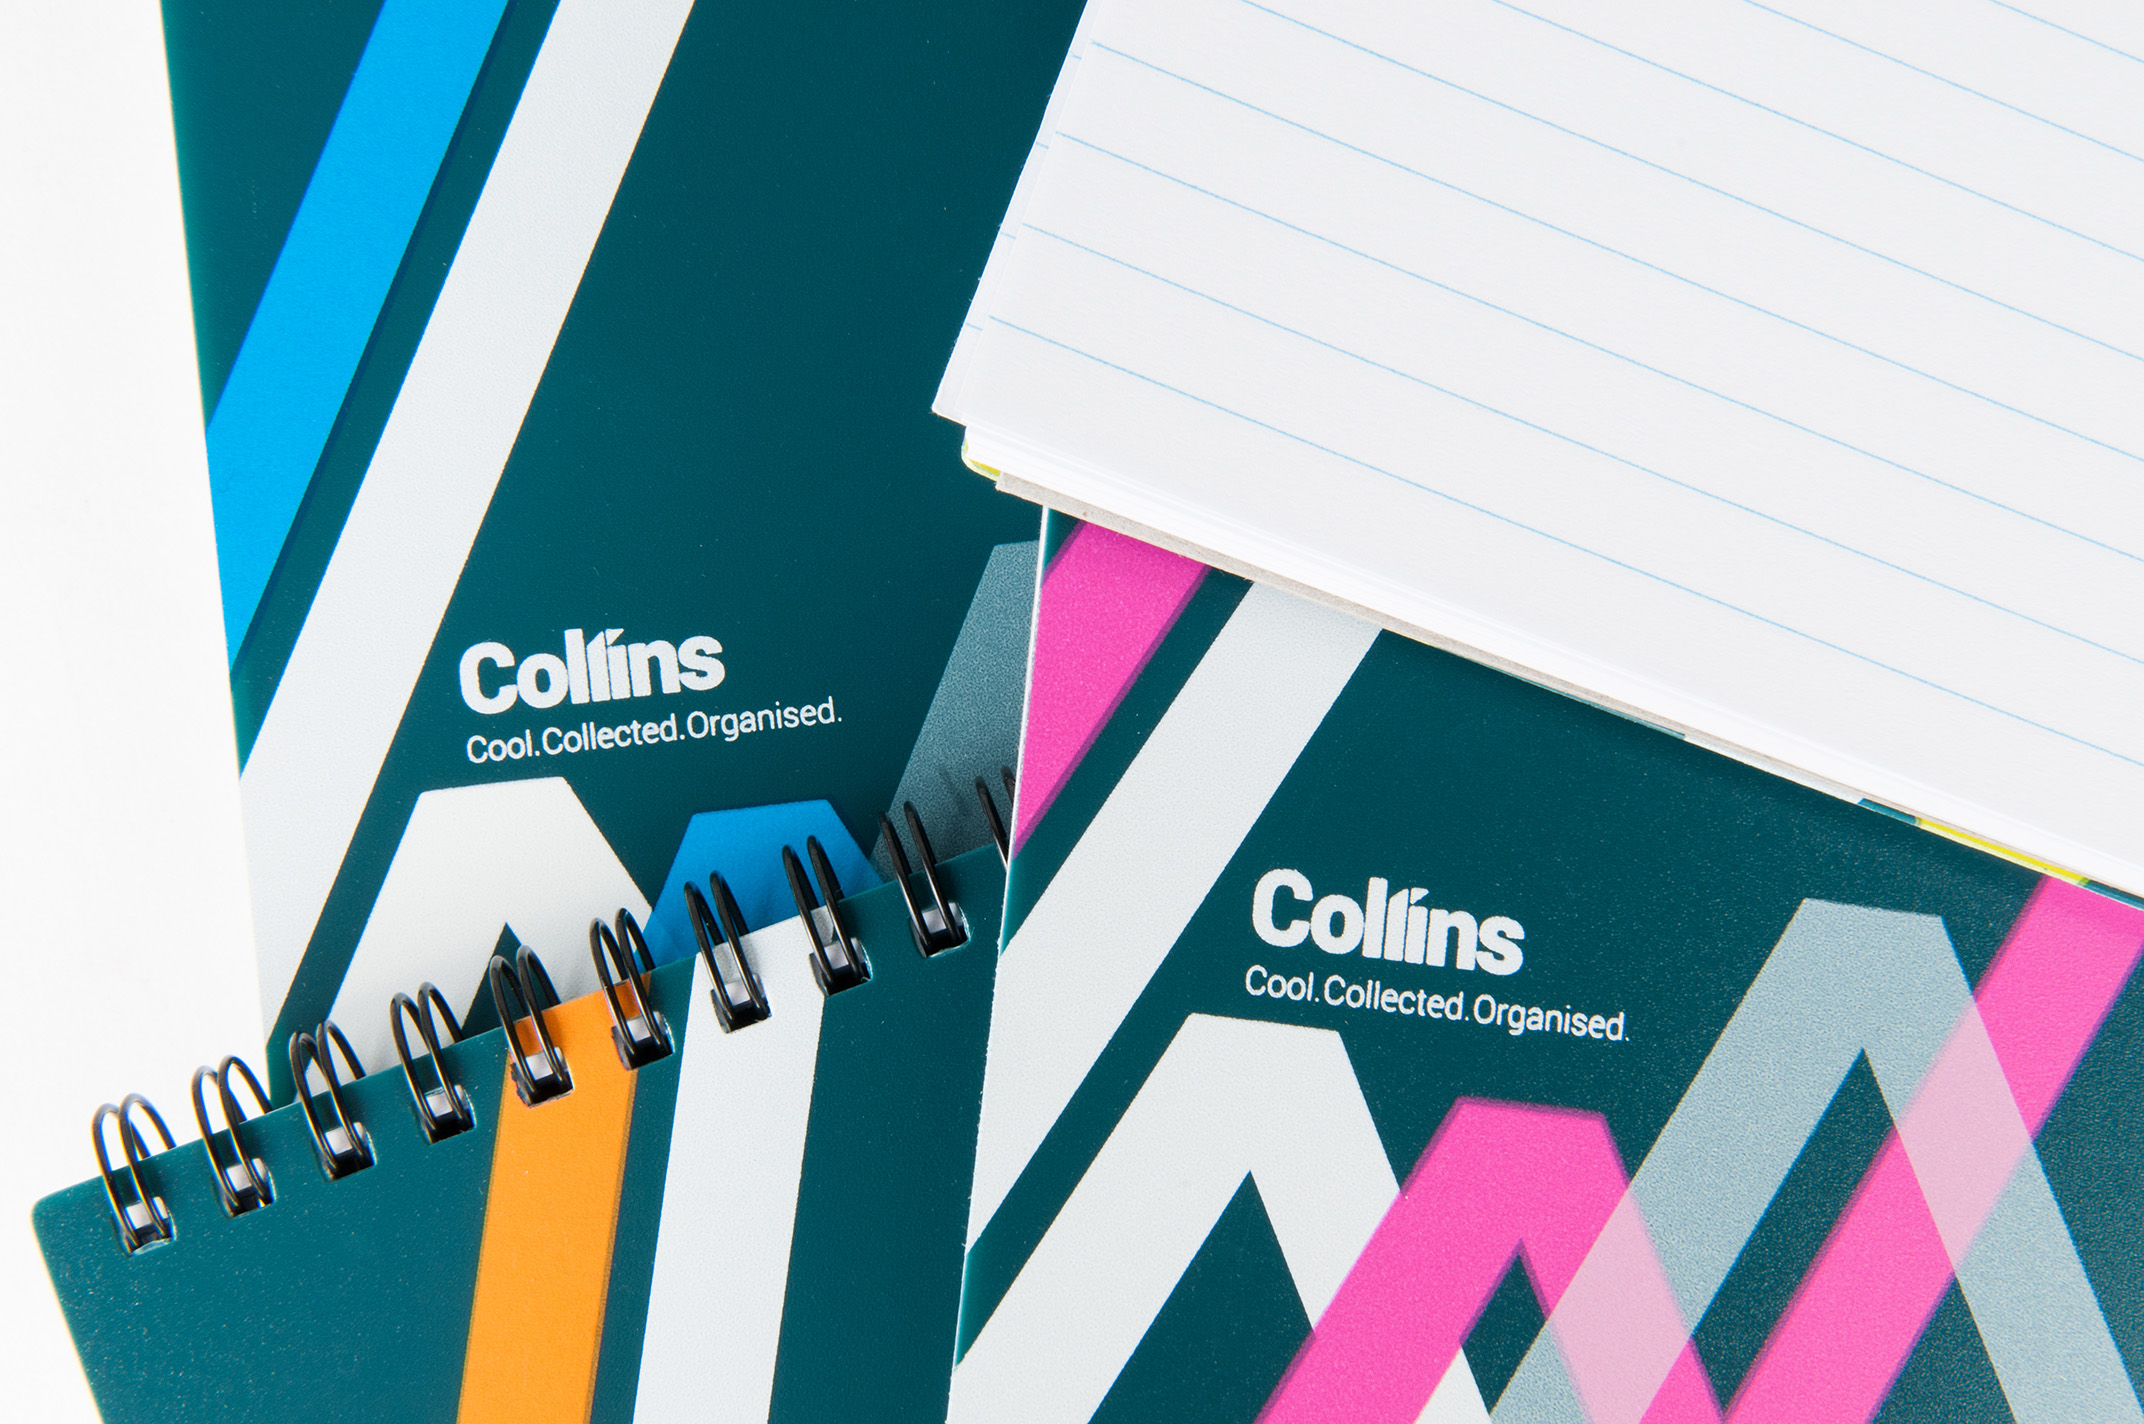 Croxley Collins notenooks product photography auckland